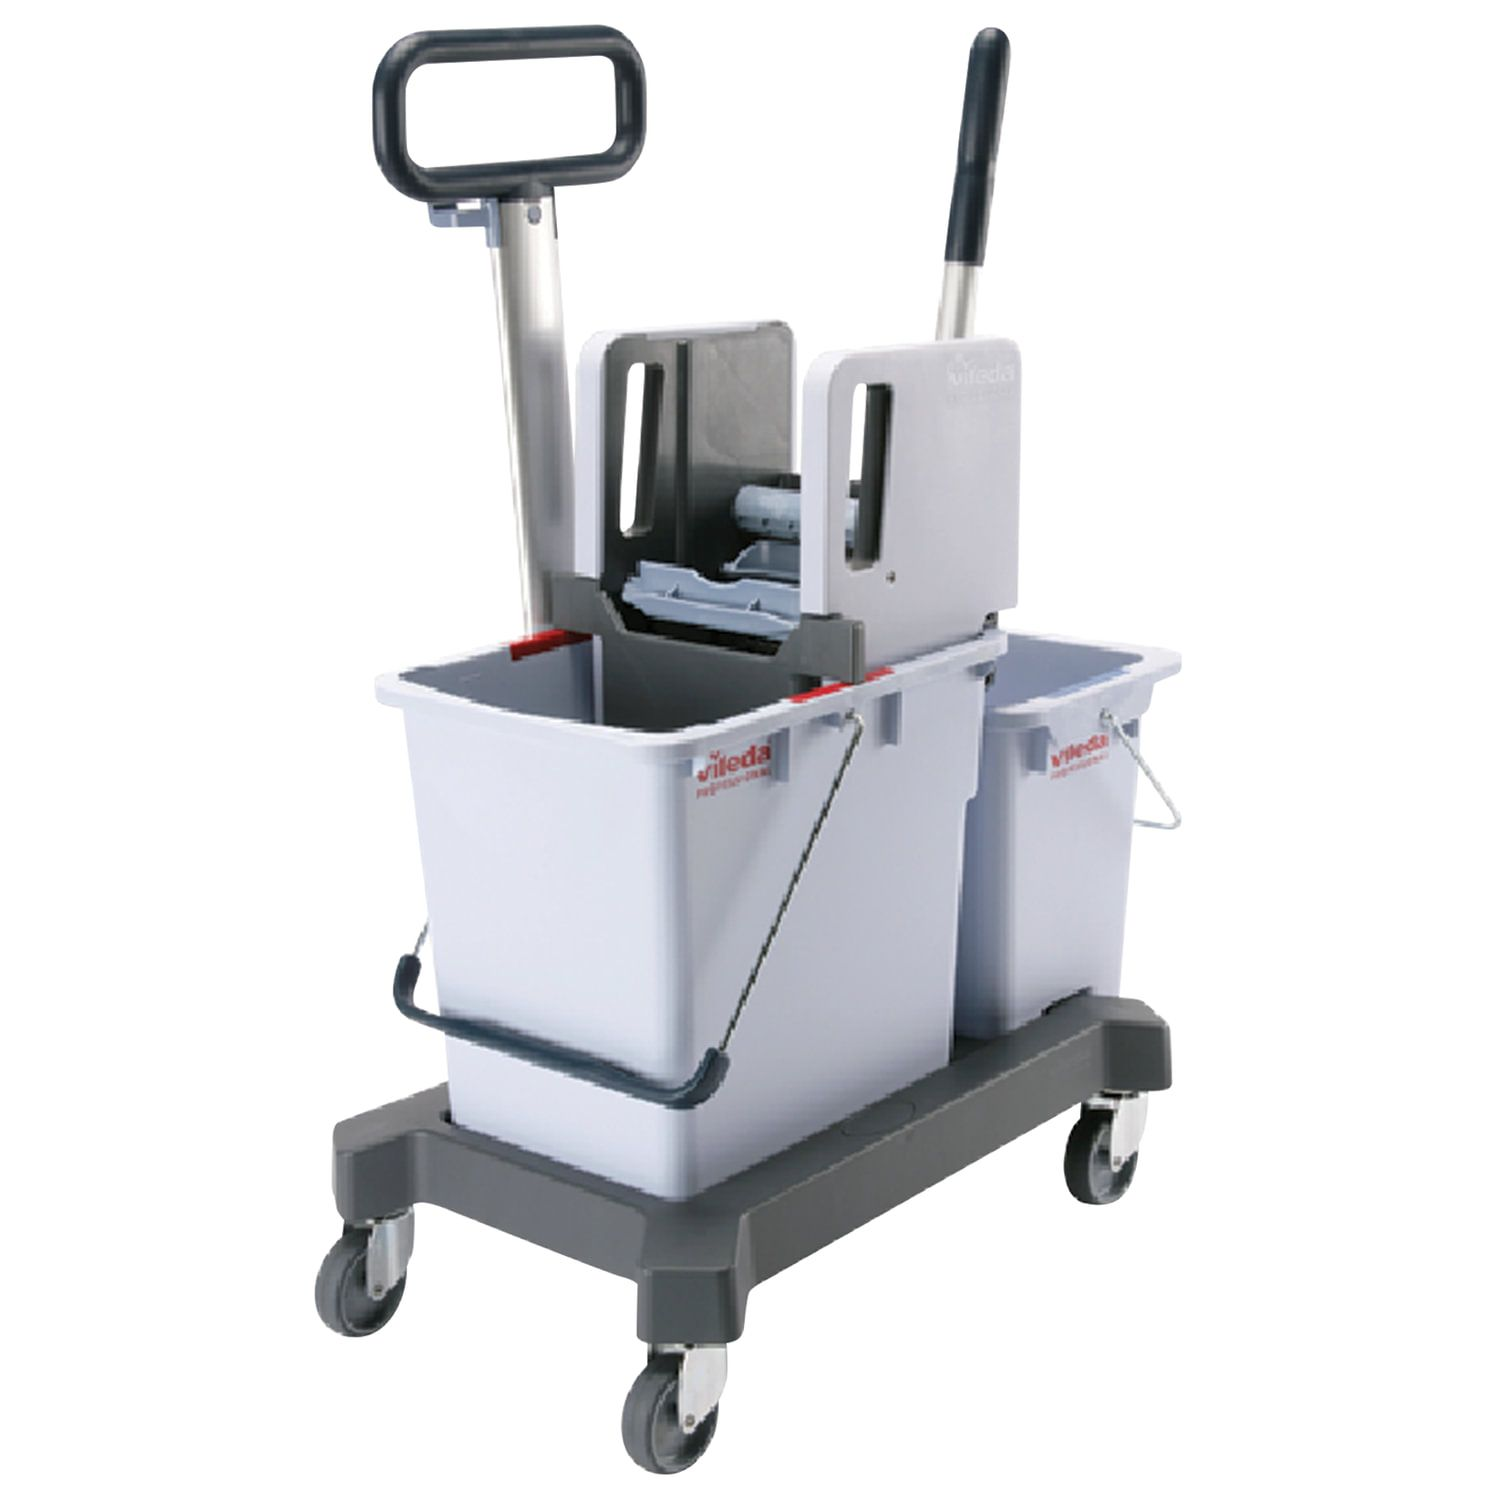 Cleaning trolley VILEDA, 2 removable buckets 25 l + 8 l, platform, with transport handle, vertical spin